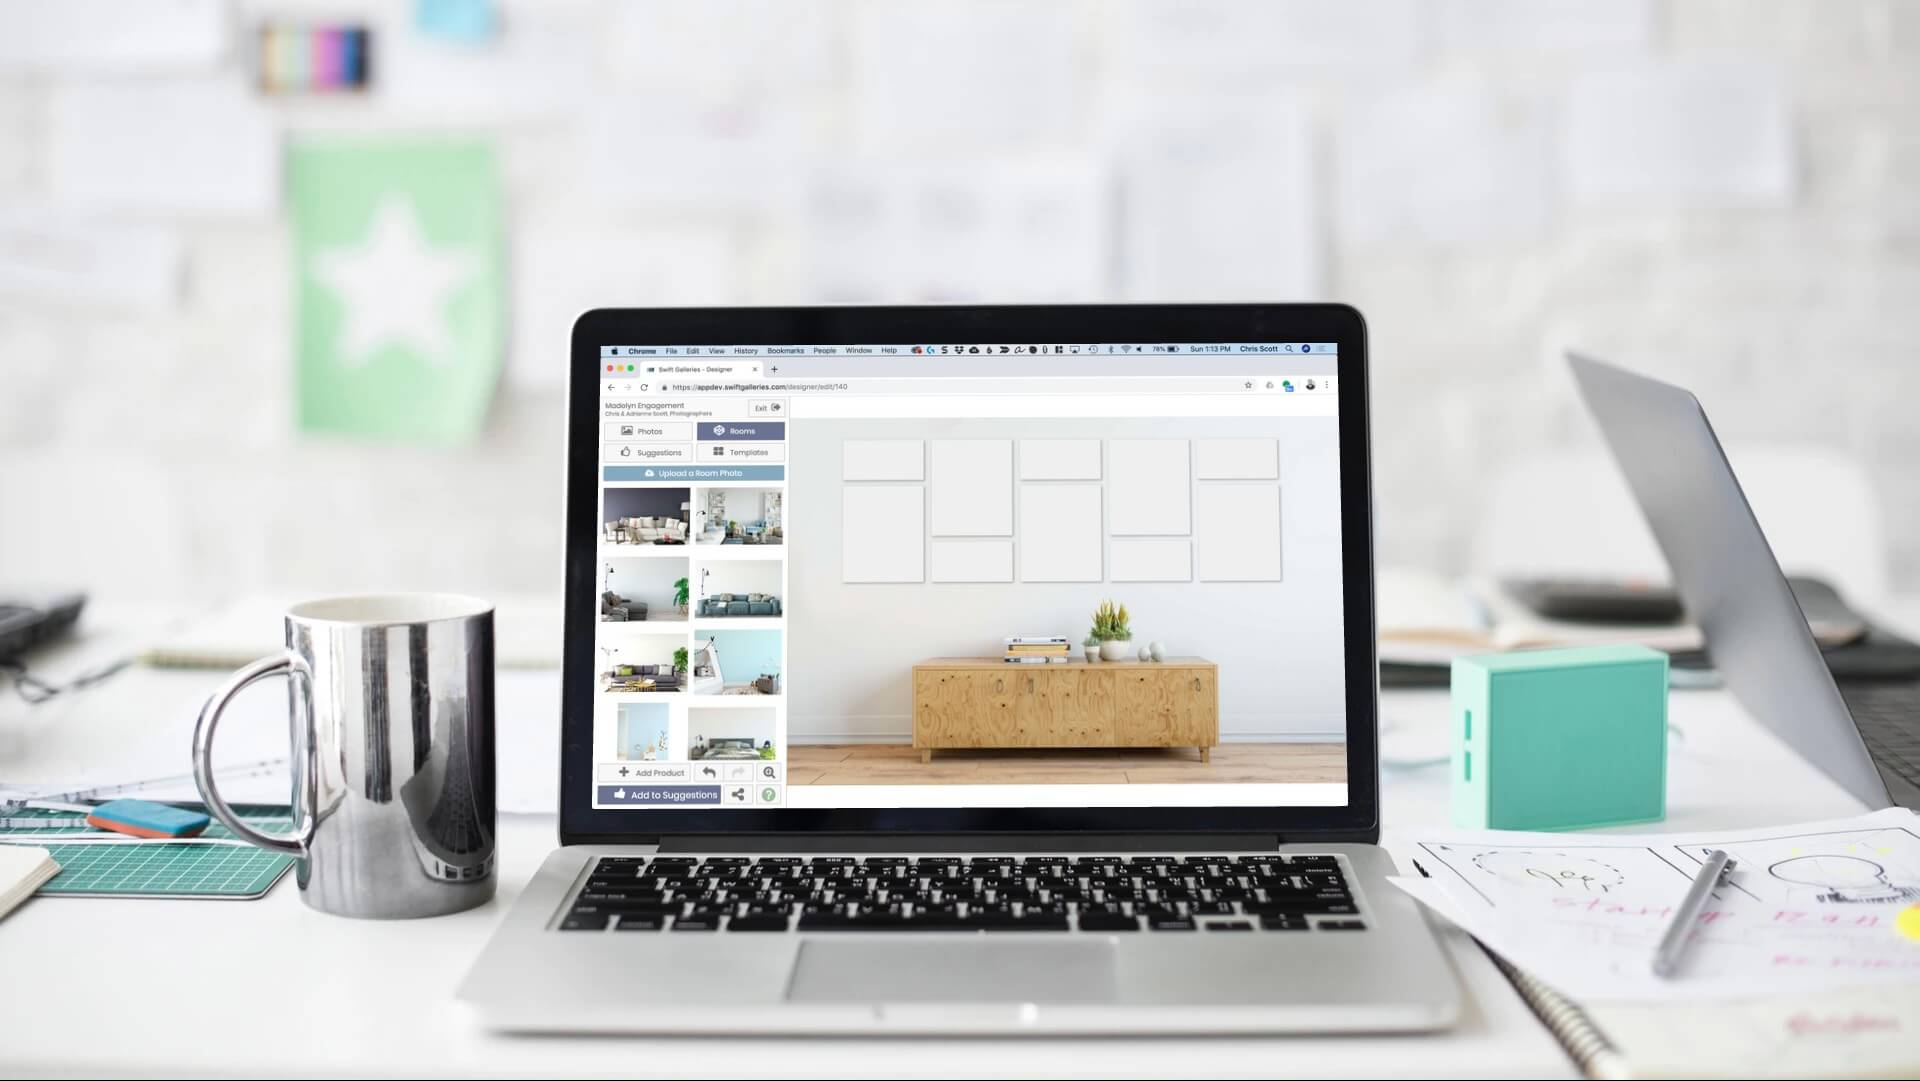 Placed on a white colored table, a laptop displays wall art templates